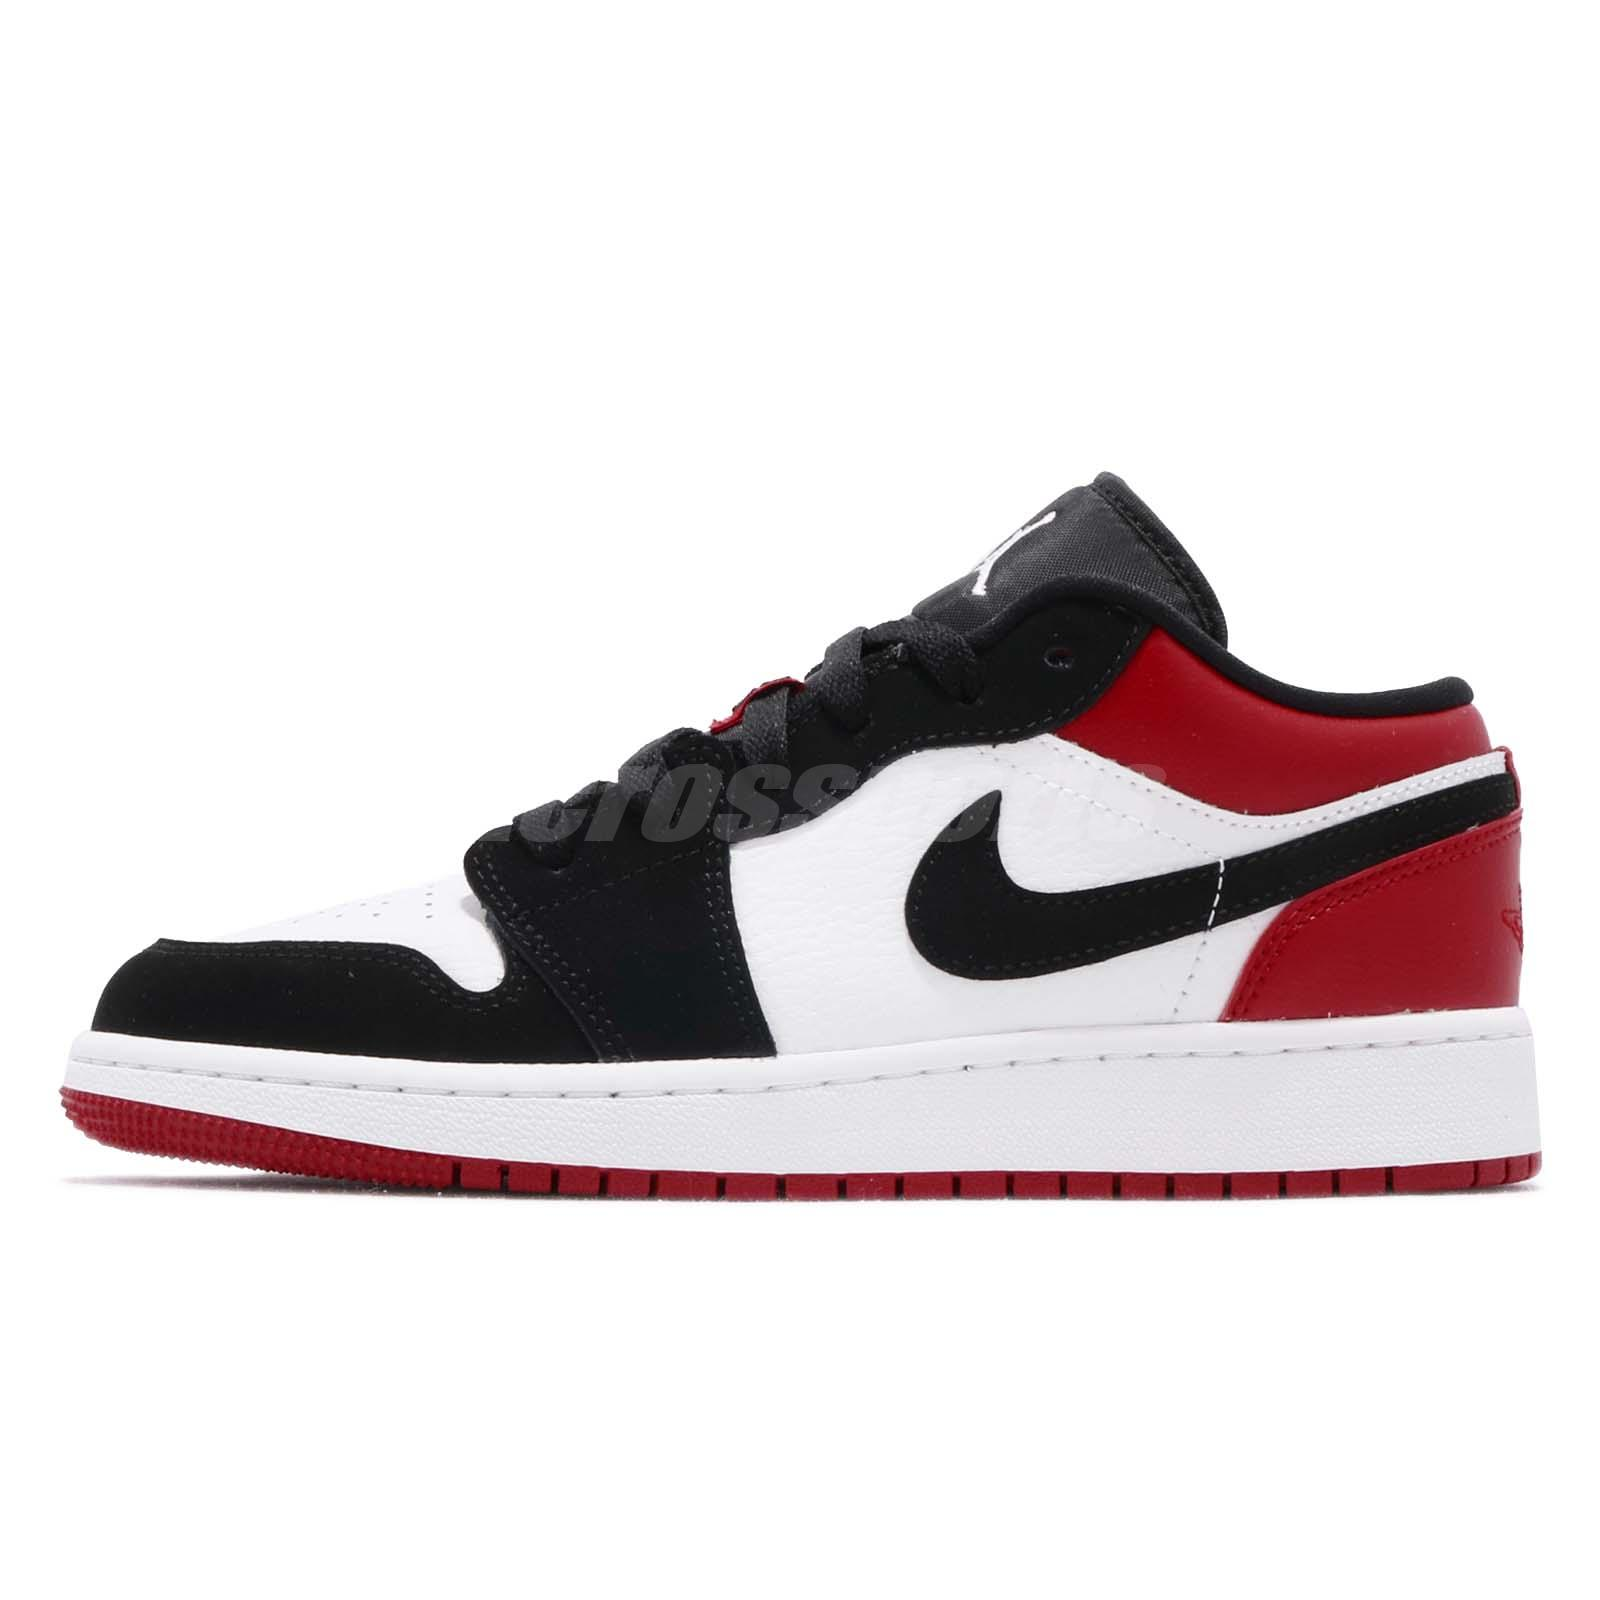 the best attitude 2dcbc 63a87 Nike Air Jordan 1 Low GS I AJ1 Black Toe Kid Youth Women Shoe Sneaker 553560 -116